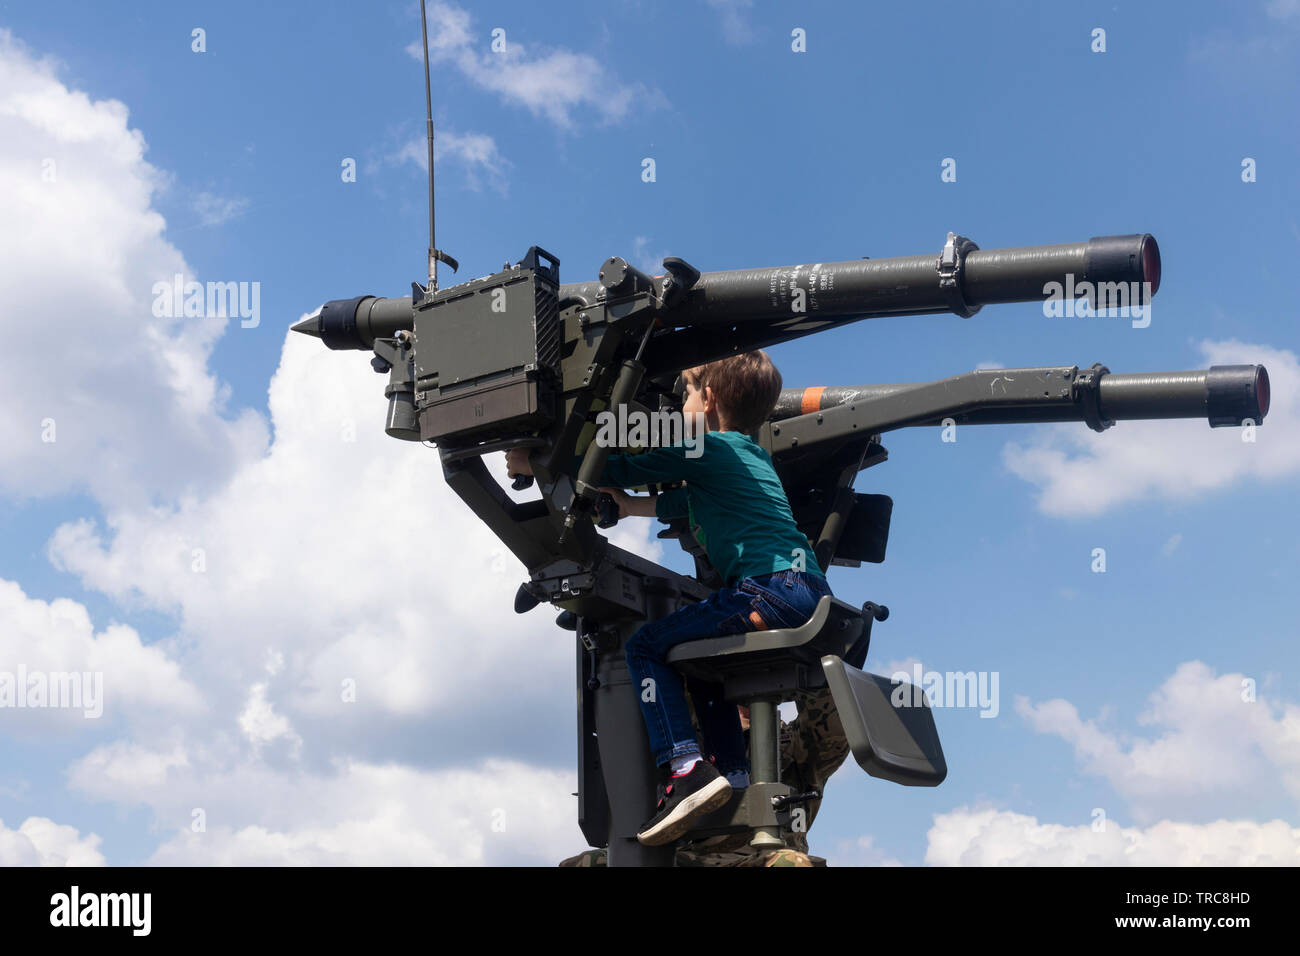 BUDAPEST/HUNGARY - 05.18, 2019: A Mistral surface-to-air twin missile turret at a defense show, against a blue sky. - Stock Image